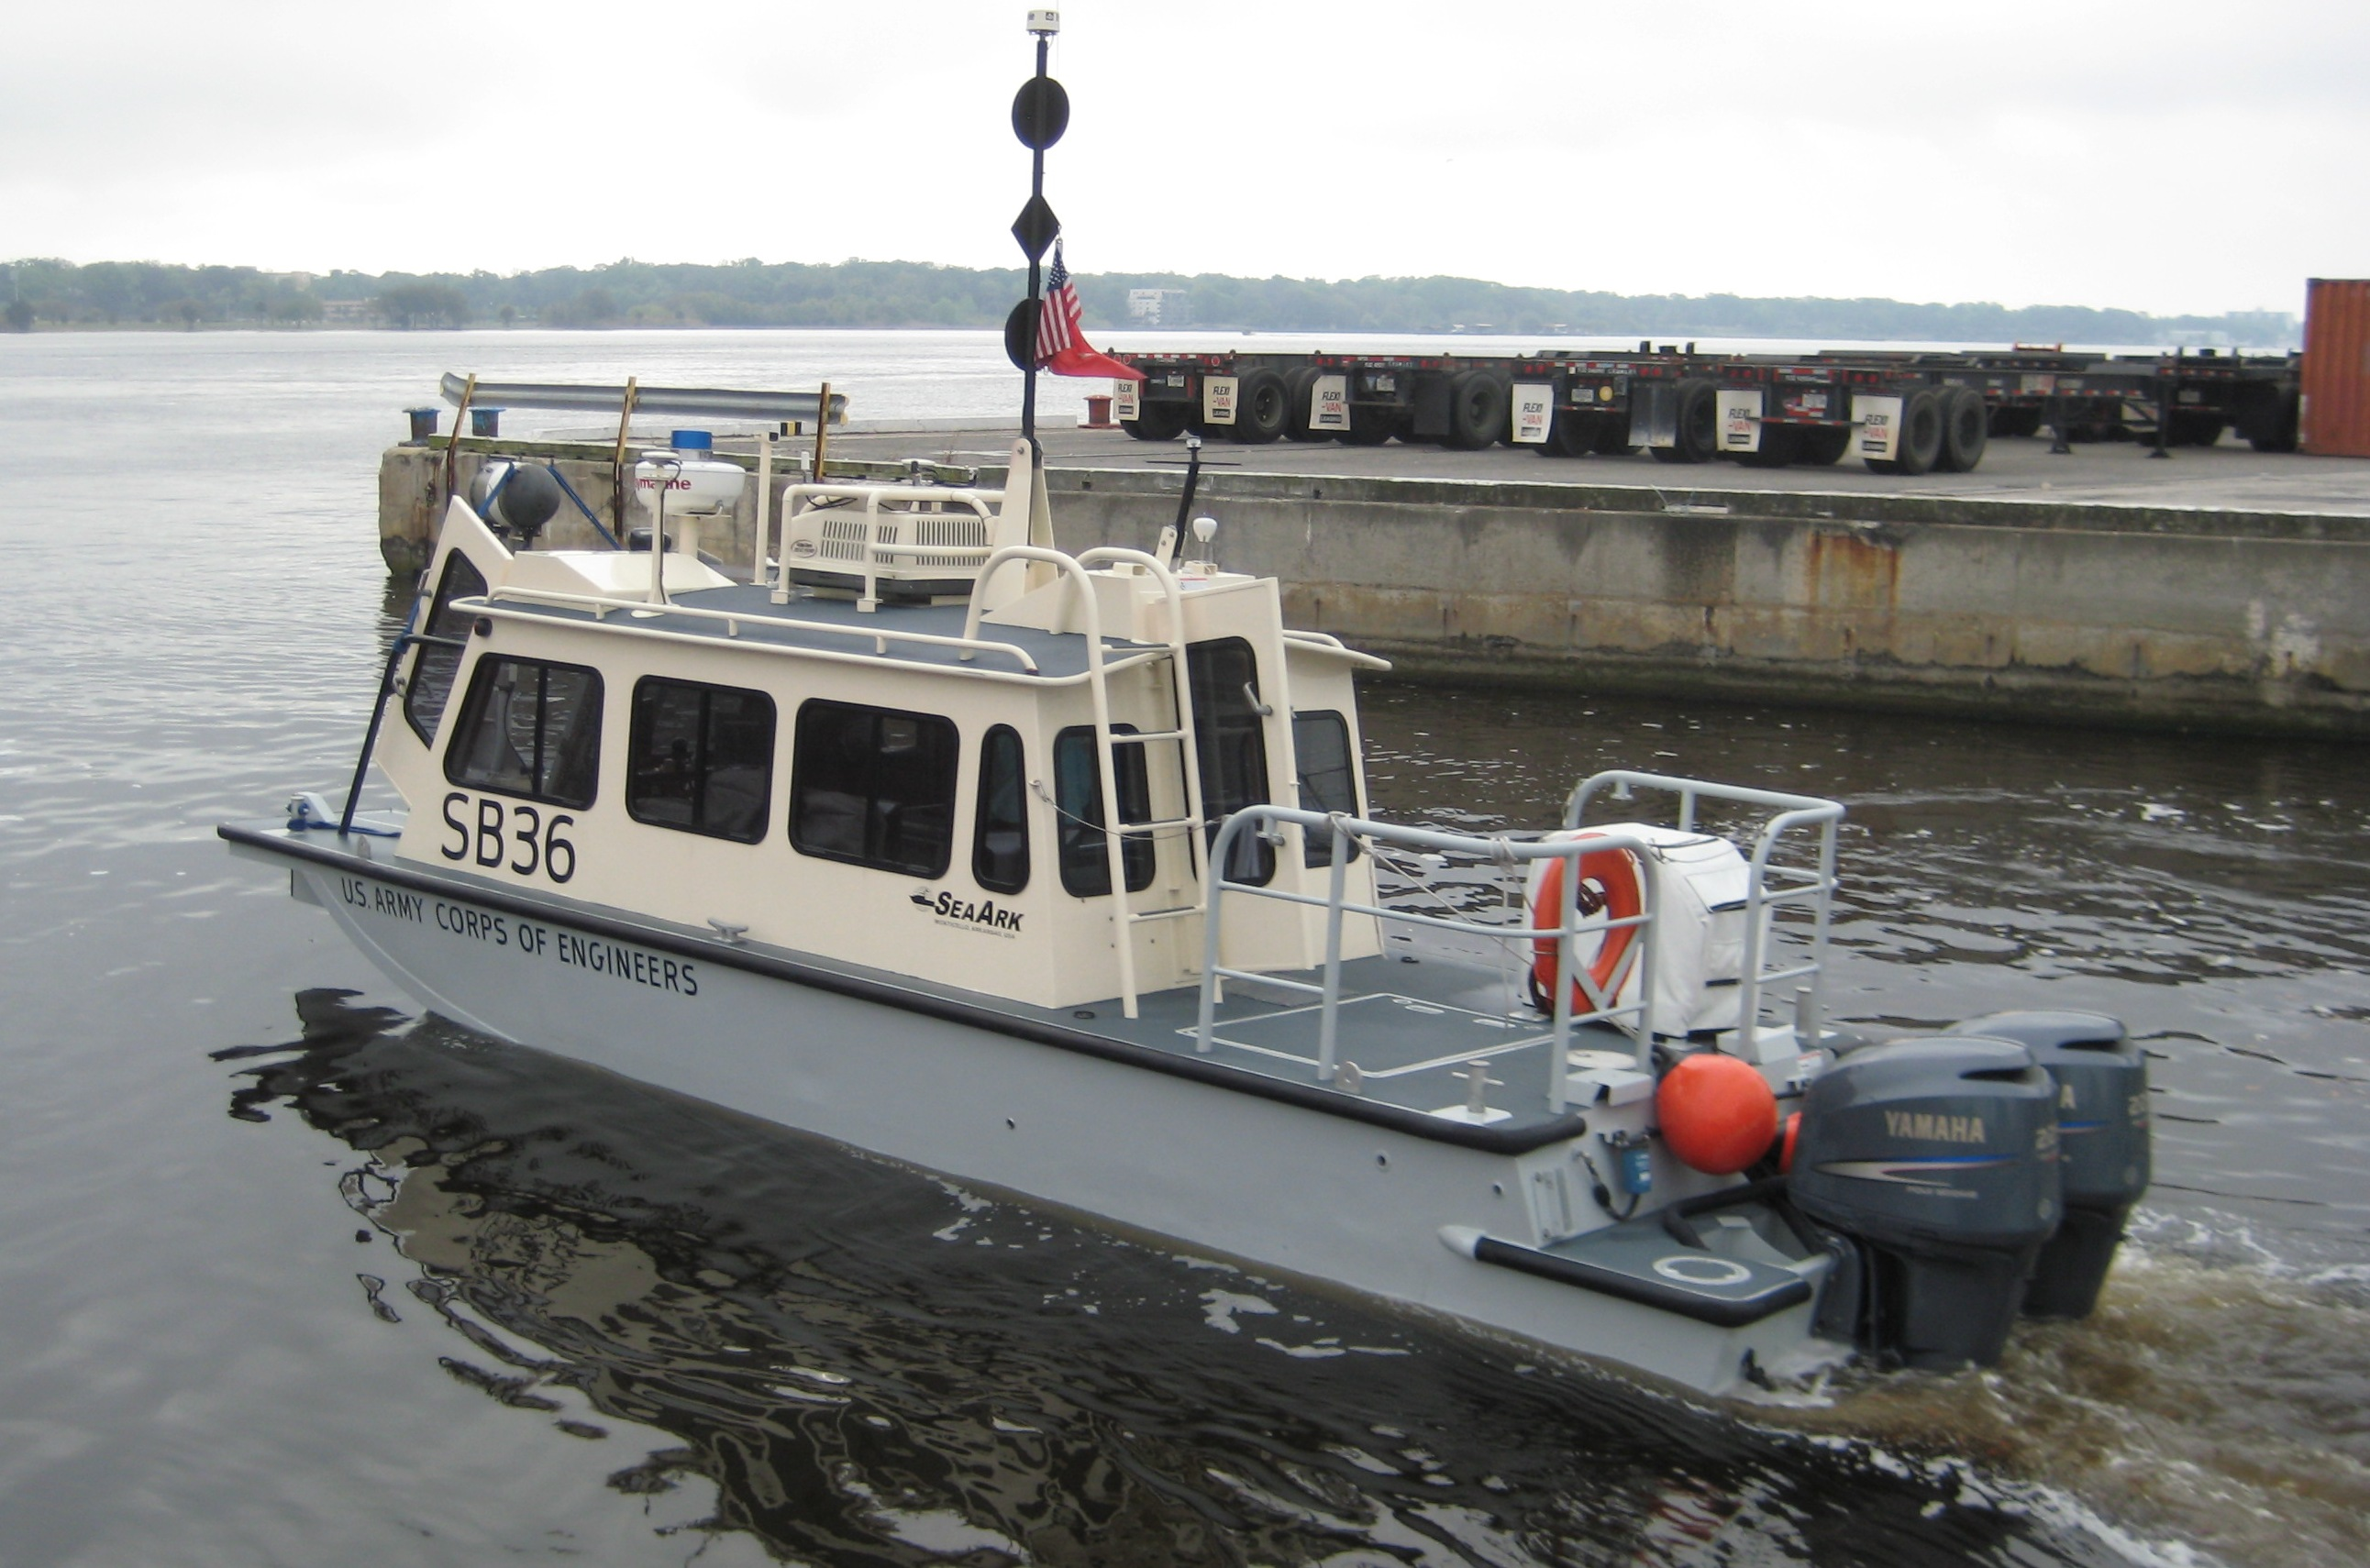 Survey Vessel SB-36